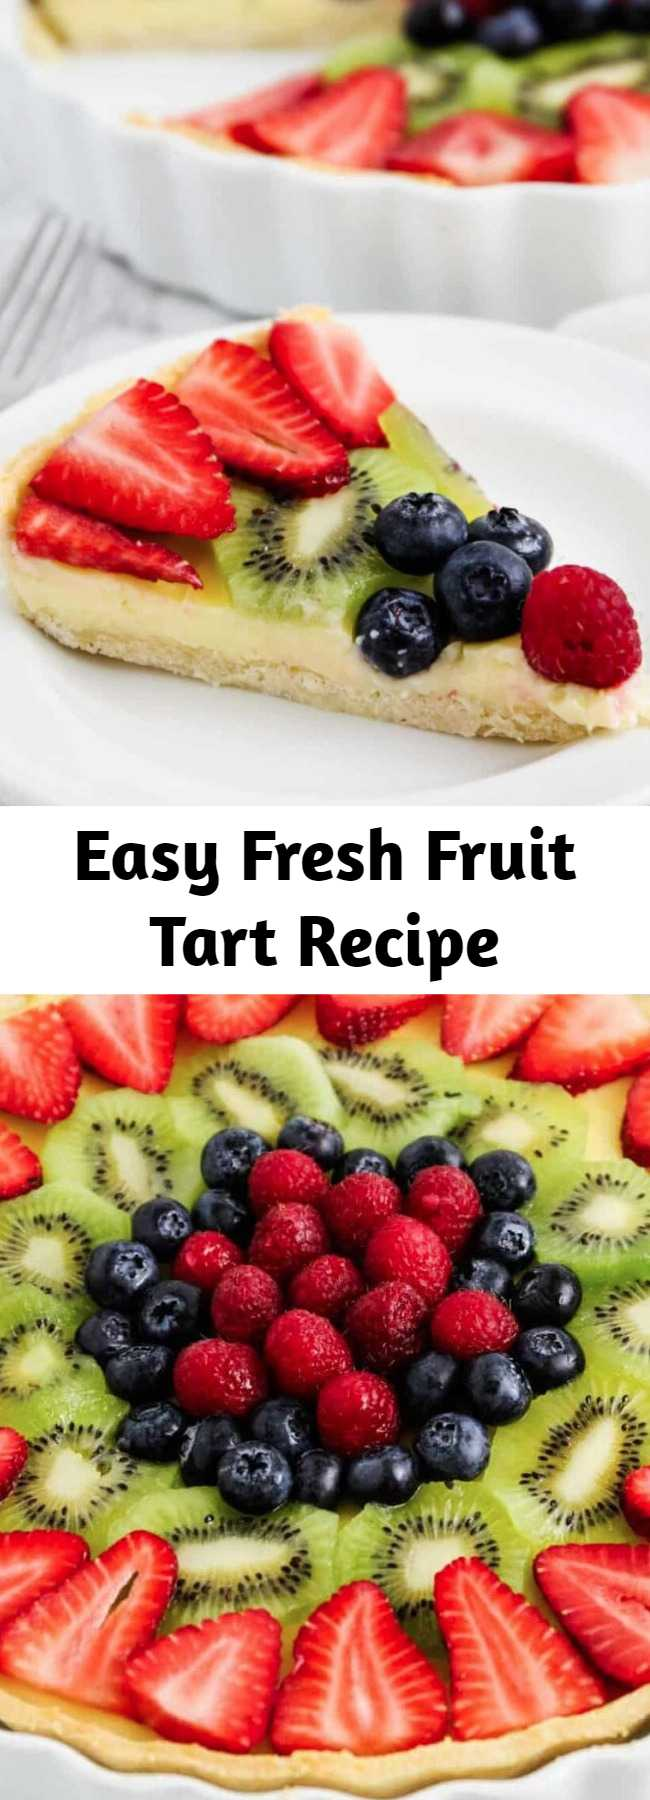 Easy Fresh Fruit Tart Recipe - Each bite of this fresh fruit tart is a mix of crumbly sweet crust, smooth and decadent custard and juicy fresh berries! This is the perfect refreshing treat for warmer weather!